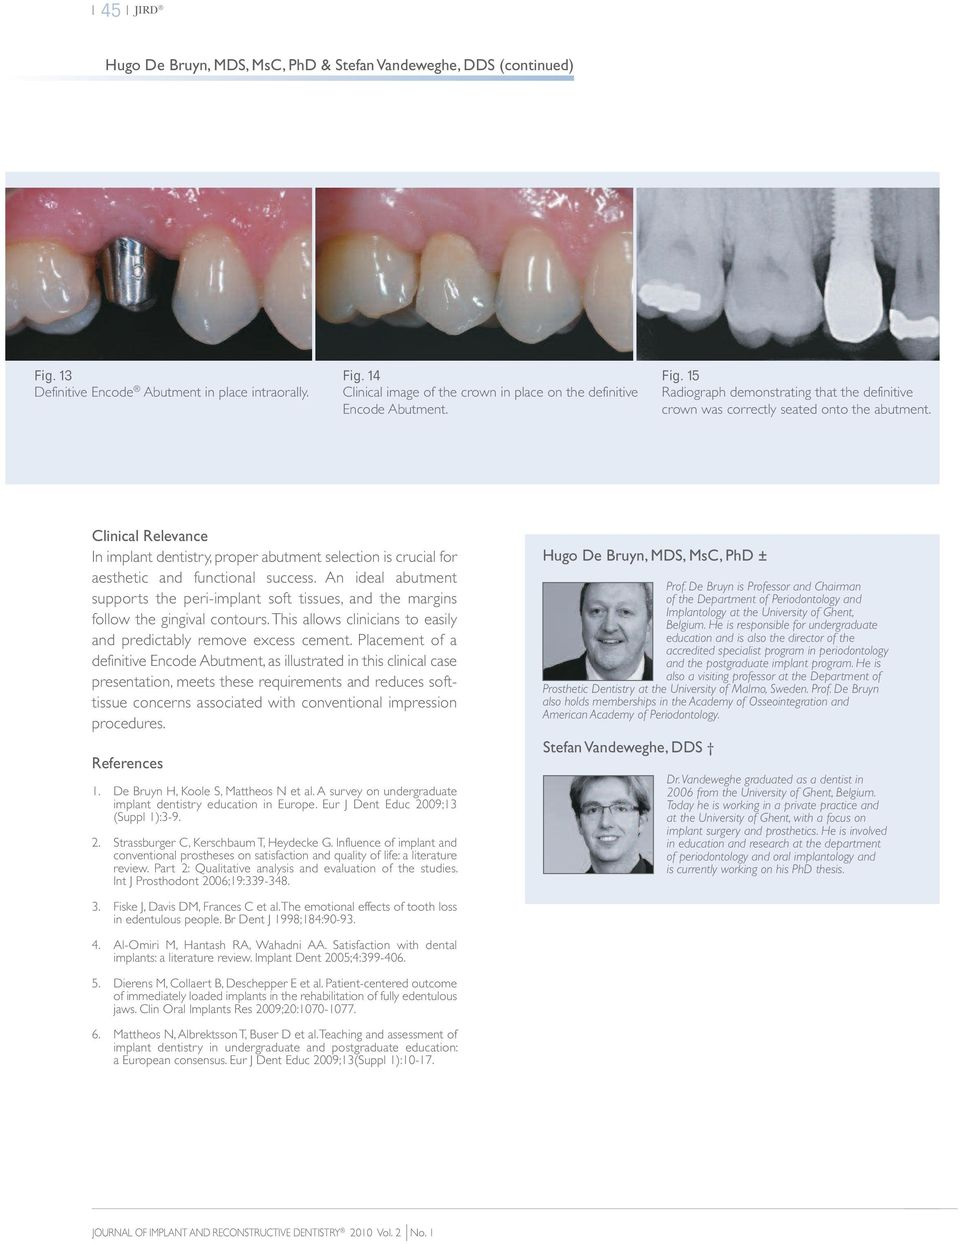 Clinical Relevance In implant dentistry, proper abutment selection is crucial for aesthetic and functional success.